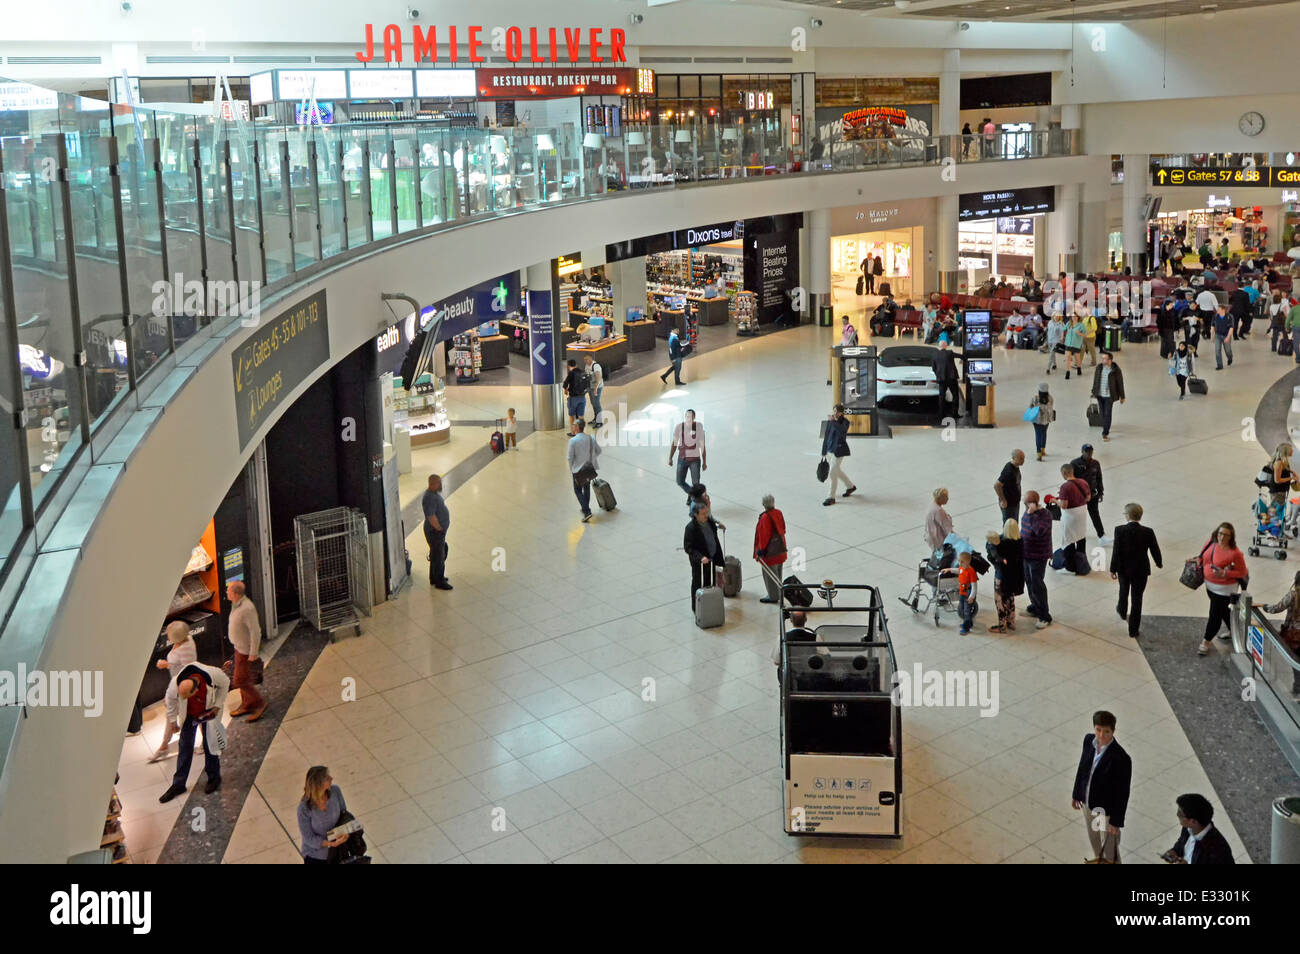 Jamie Oliver restaurant above the Gatwick Airport North Terminal departure lounge and shopping concourse Crawley - Stock Image